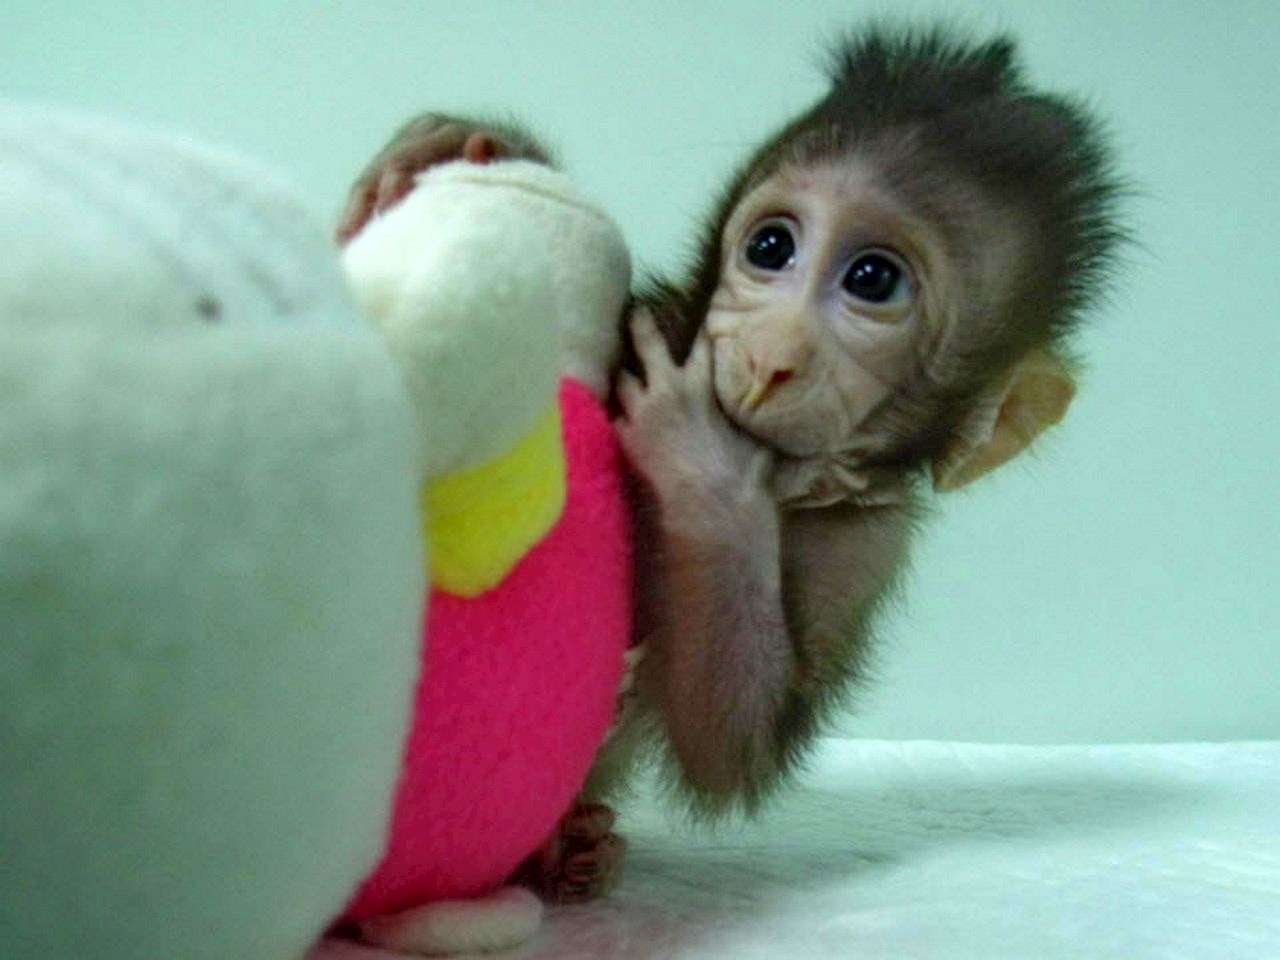 Zhong Zhong, a cloned long tailed macaque monkey